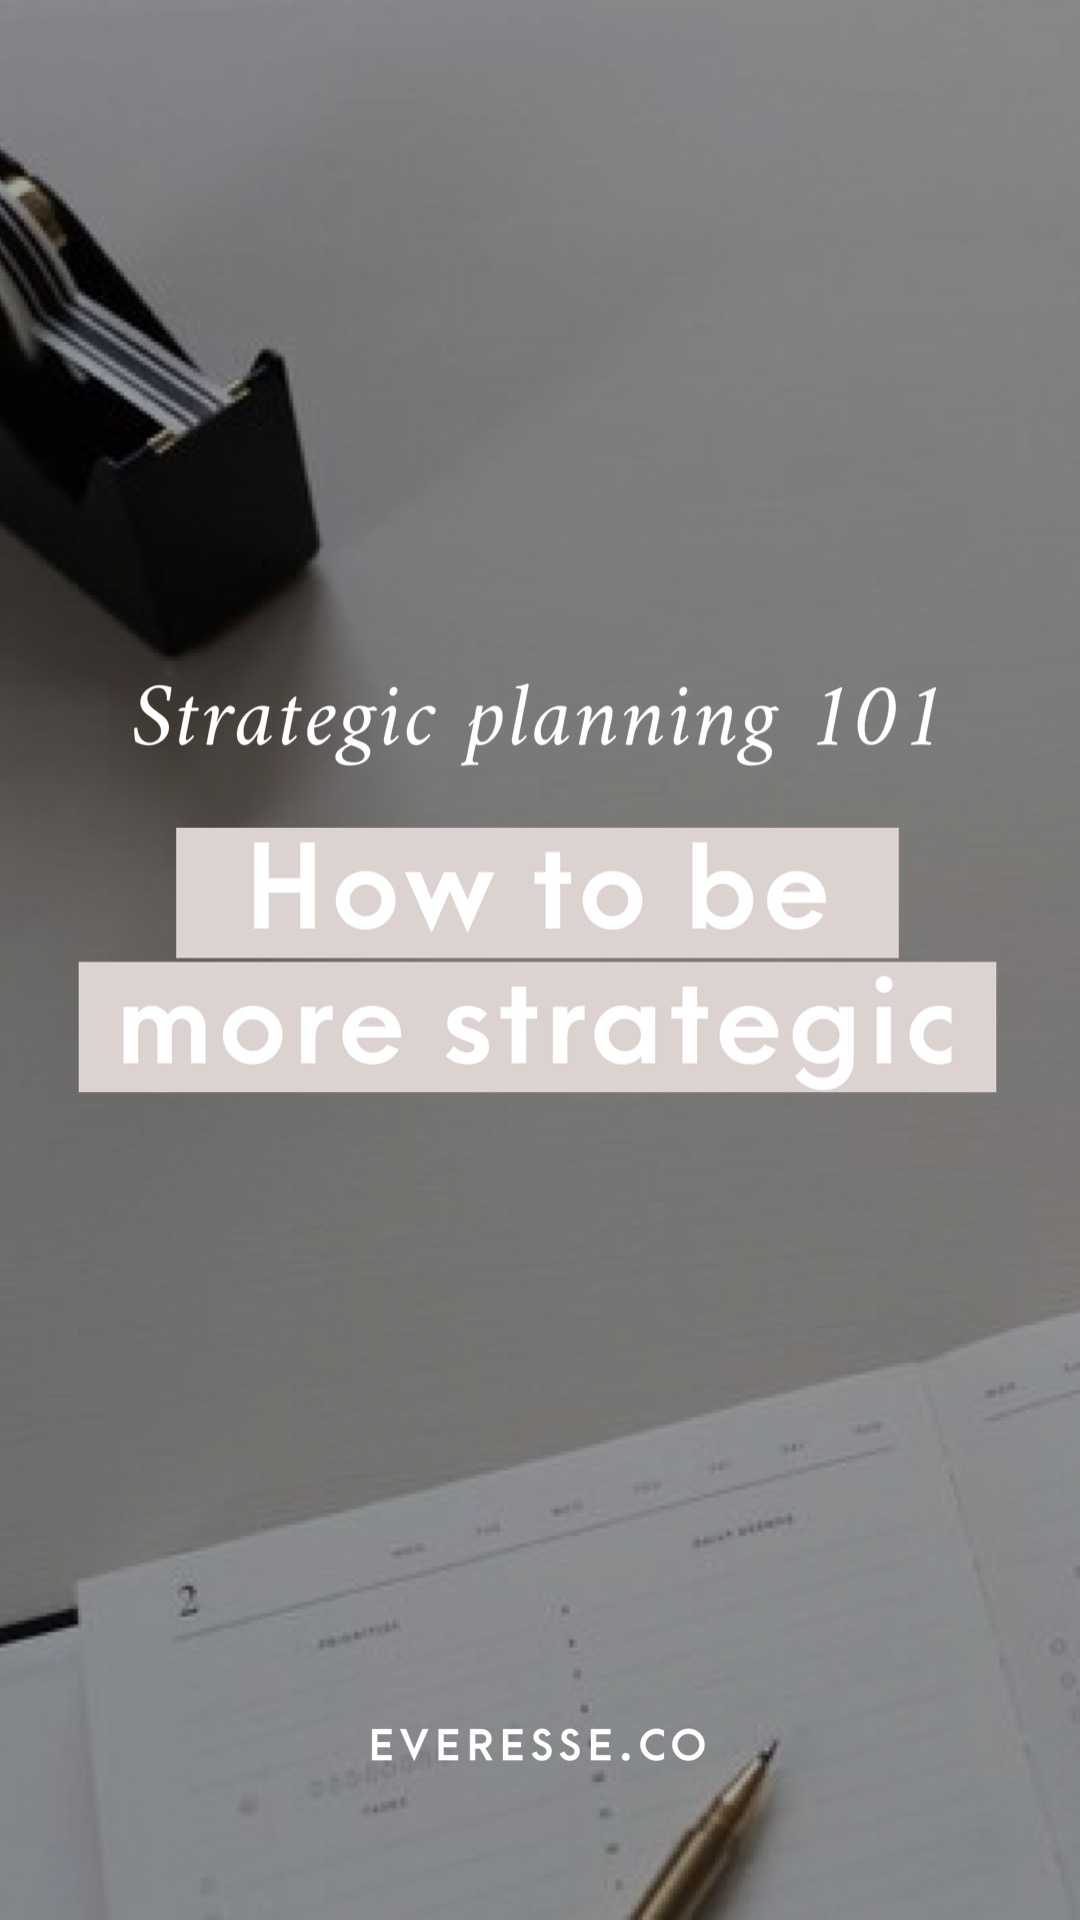 Strategic planning 101: how to be strategic